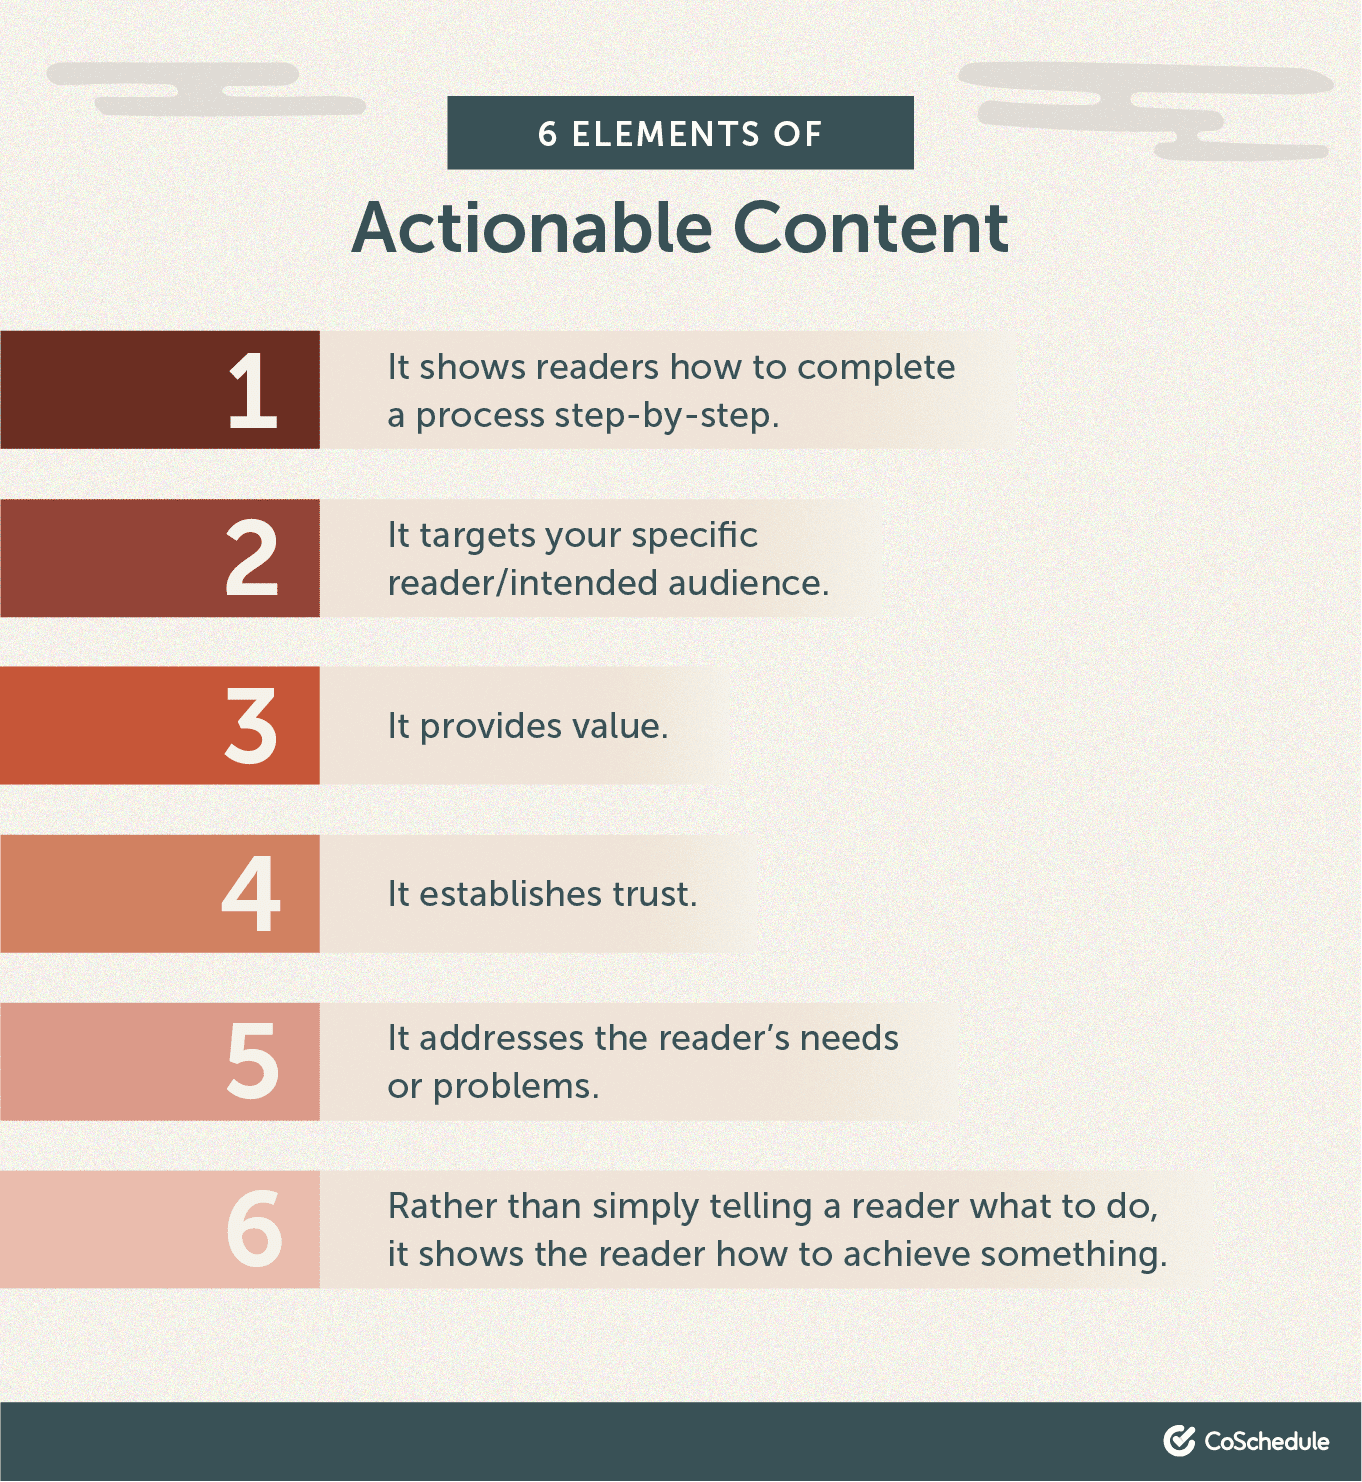 6 elements of actionable content